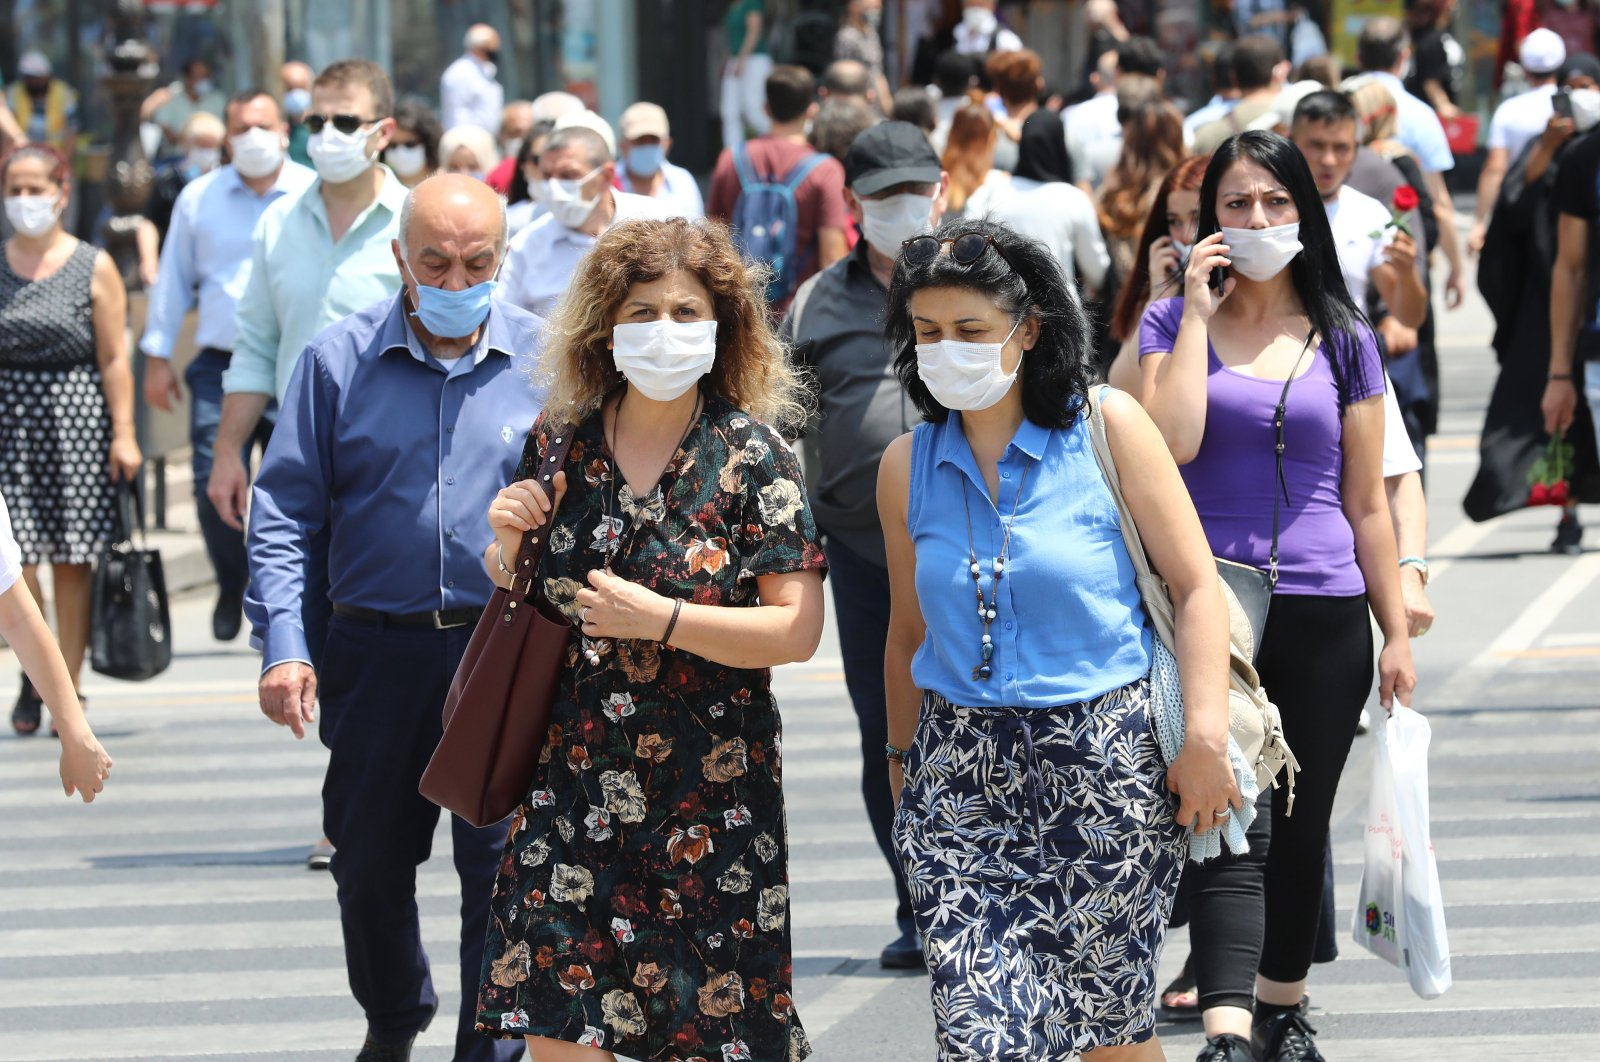 People wearing face masks walk on a street in the capital Ankara, Turkey, July 7, 2020. (AFP Photo)